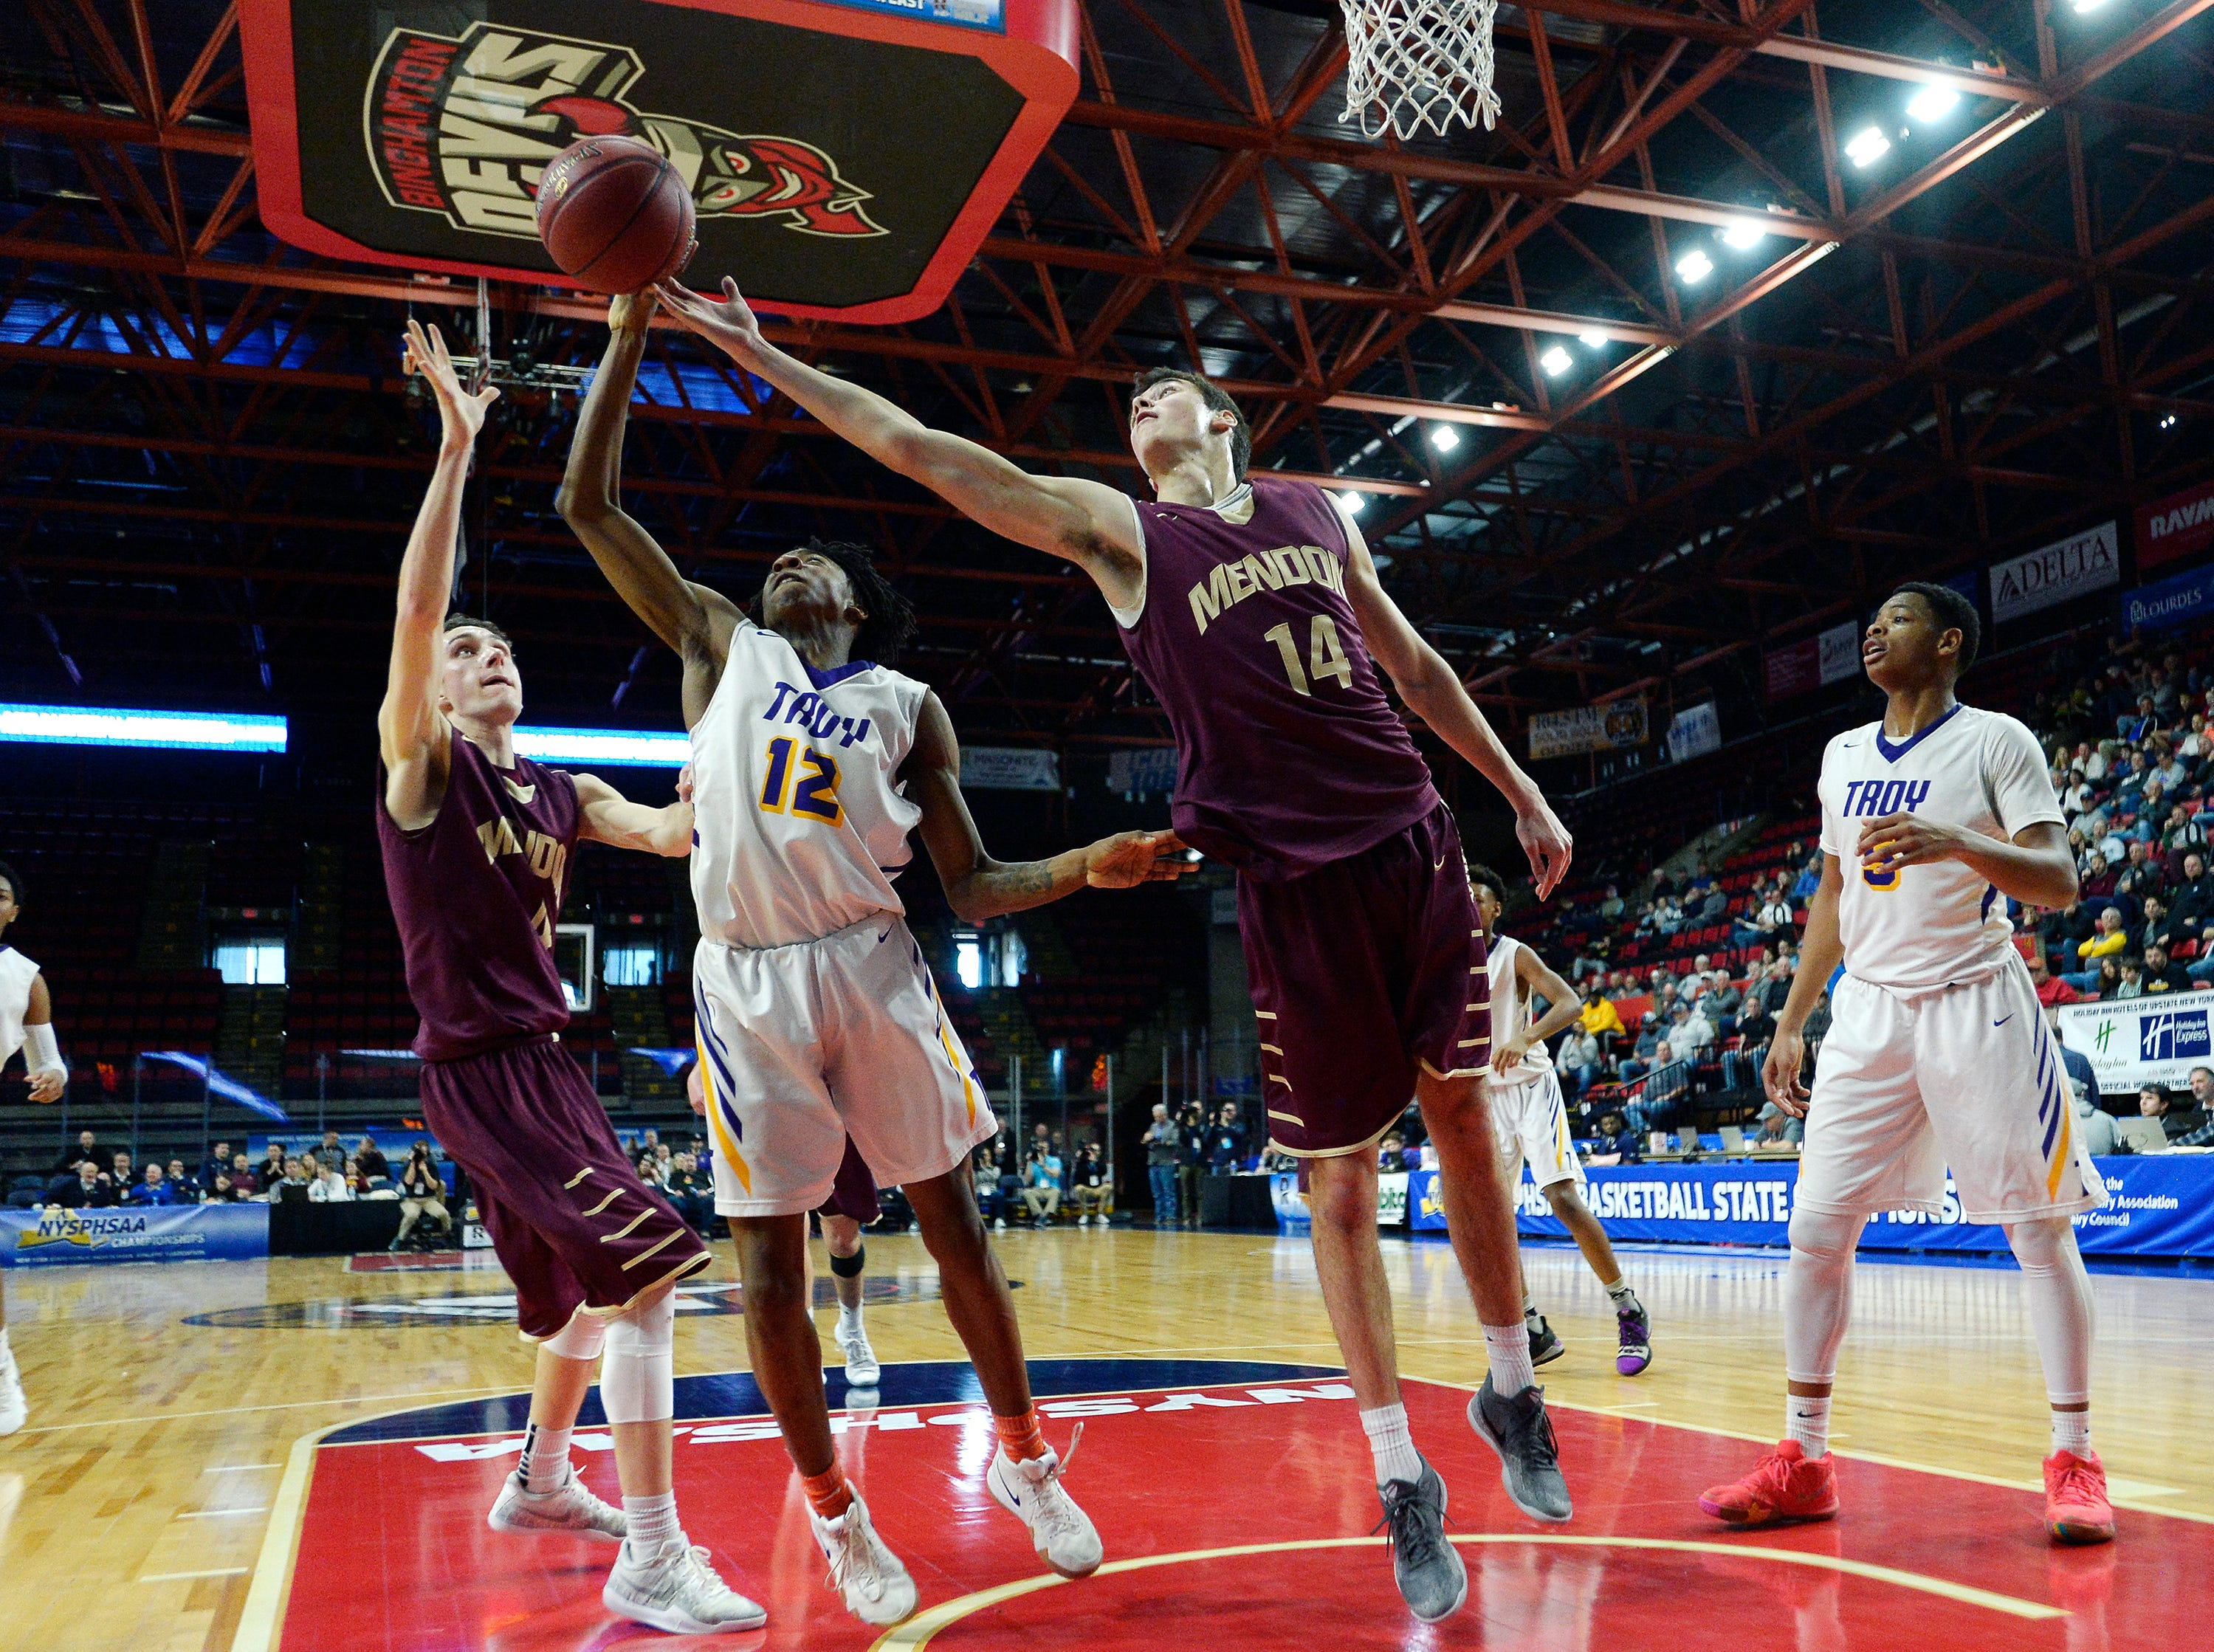 Pittsford Mendon's Dan Cook, right, and Connor Krapf, left, challenge Troy's Jay-Quan Moore for a rebound during a Class A semifinal.